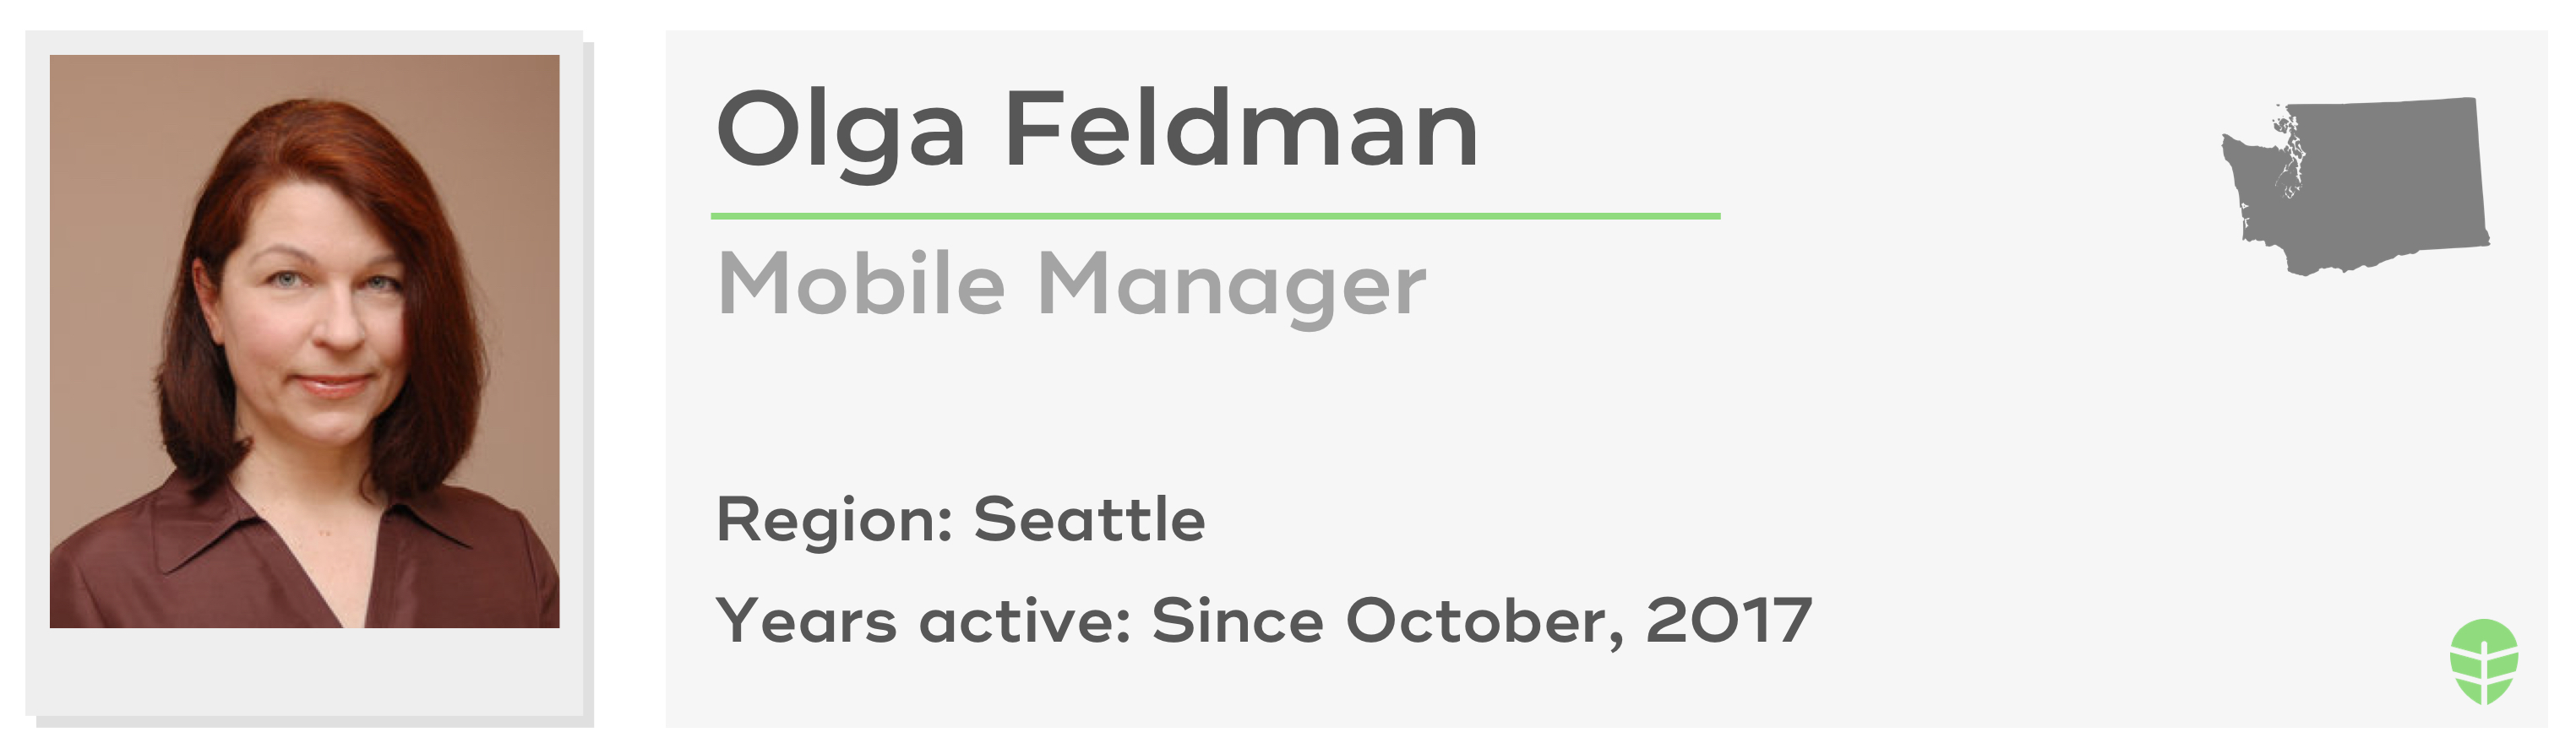 olga-feldman-onerent-property-management